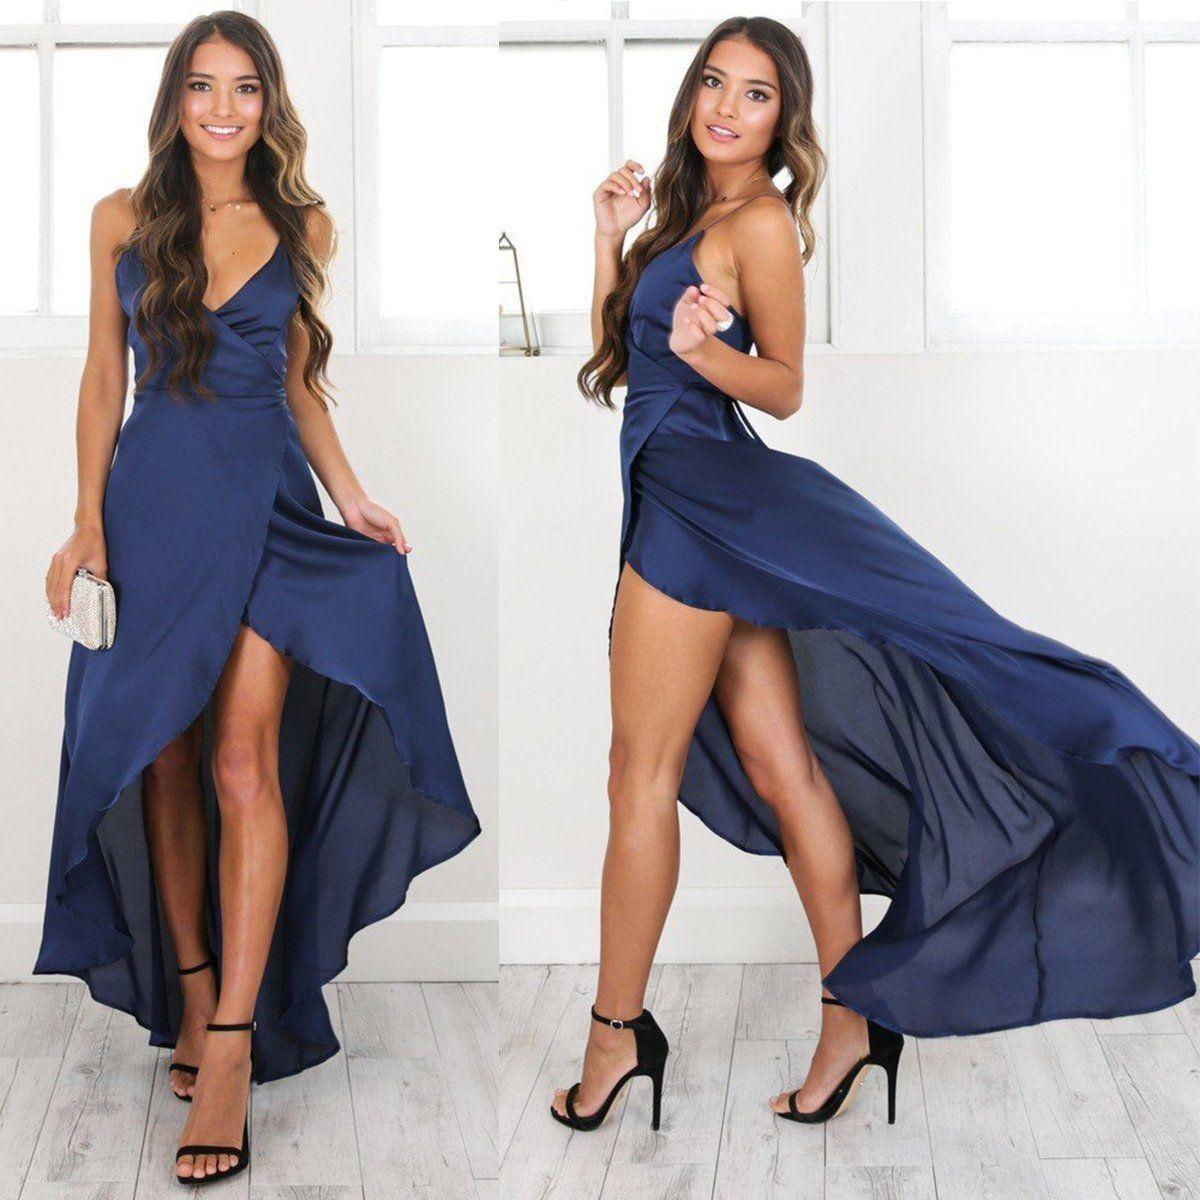 becbd005cb7 Women BOHO Beach Dress Solid Blue V Neck Sexy Sleeveless Backless Lady  Evening Party Maxi Dresses Cocktail And Party Dresses Long Dress Summer  From Modeng04 ...